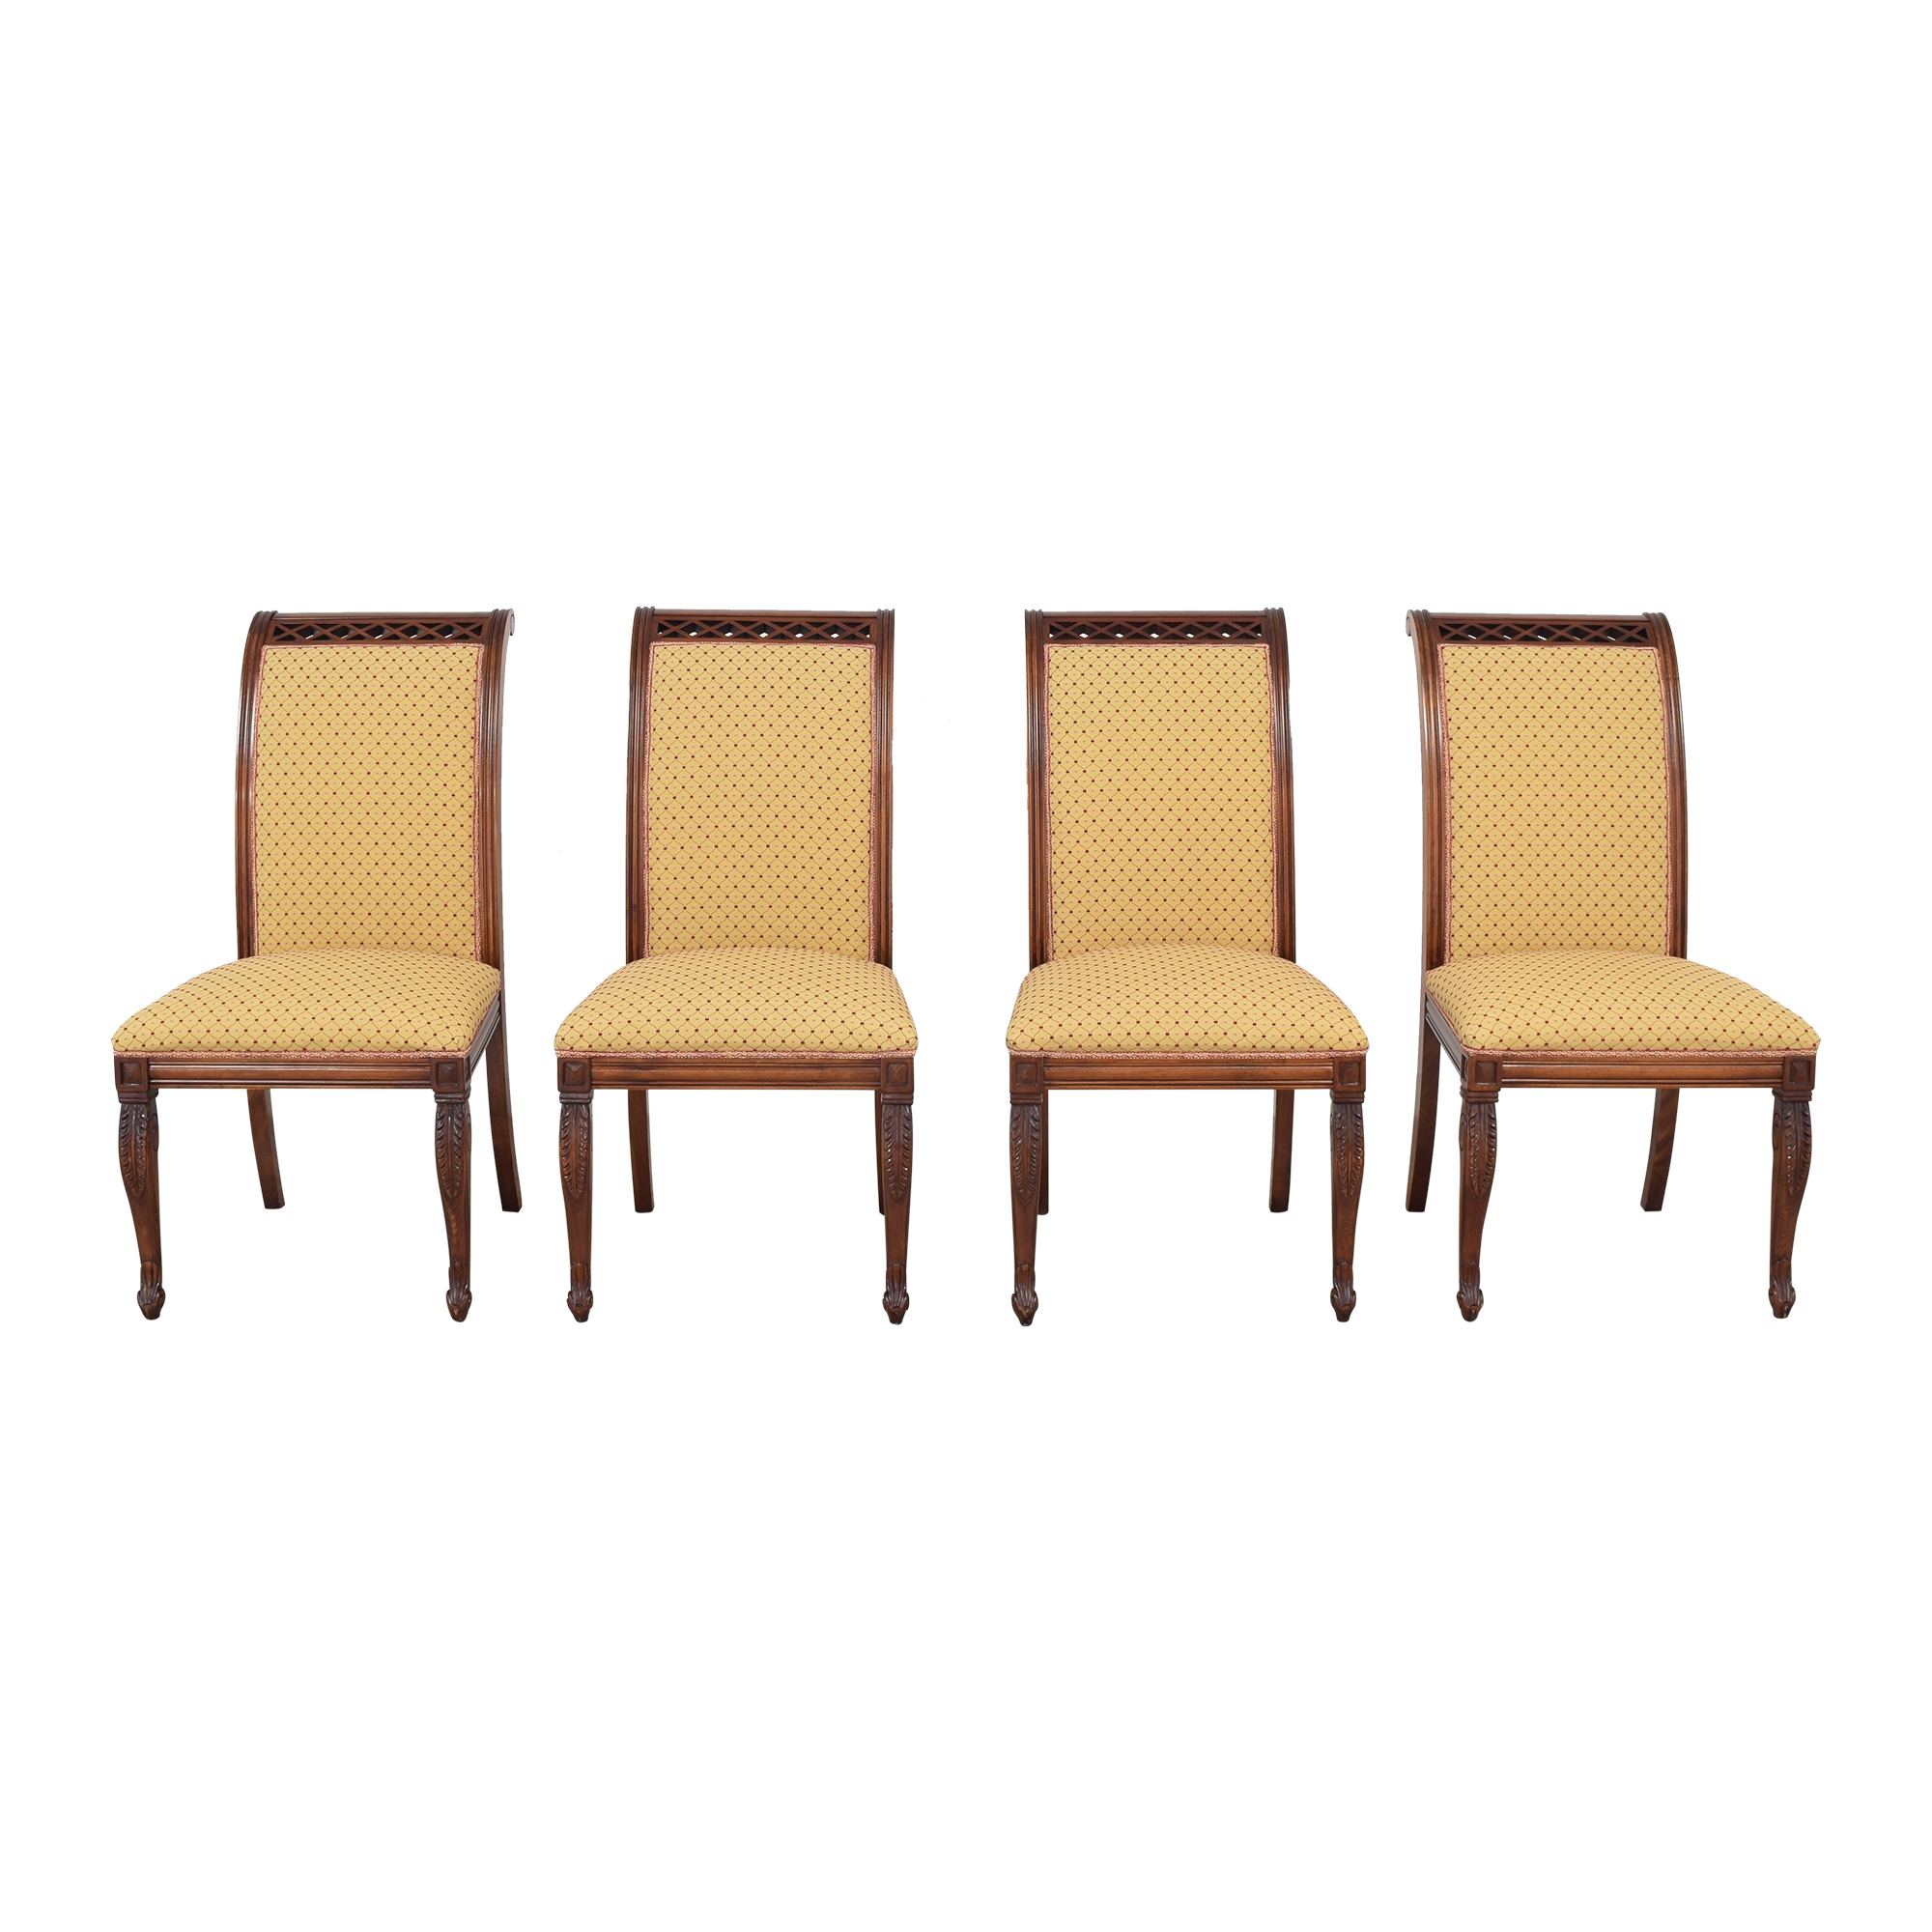 buy KPS Furnishings KPS Furnishings Custom Dining Chairs online